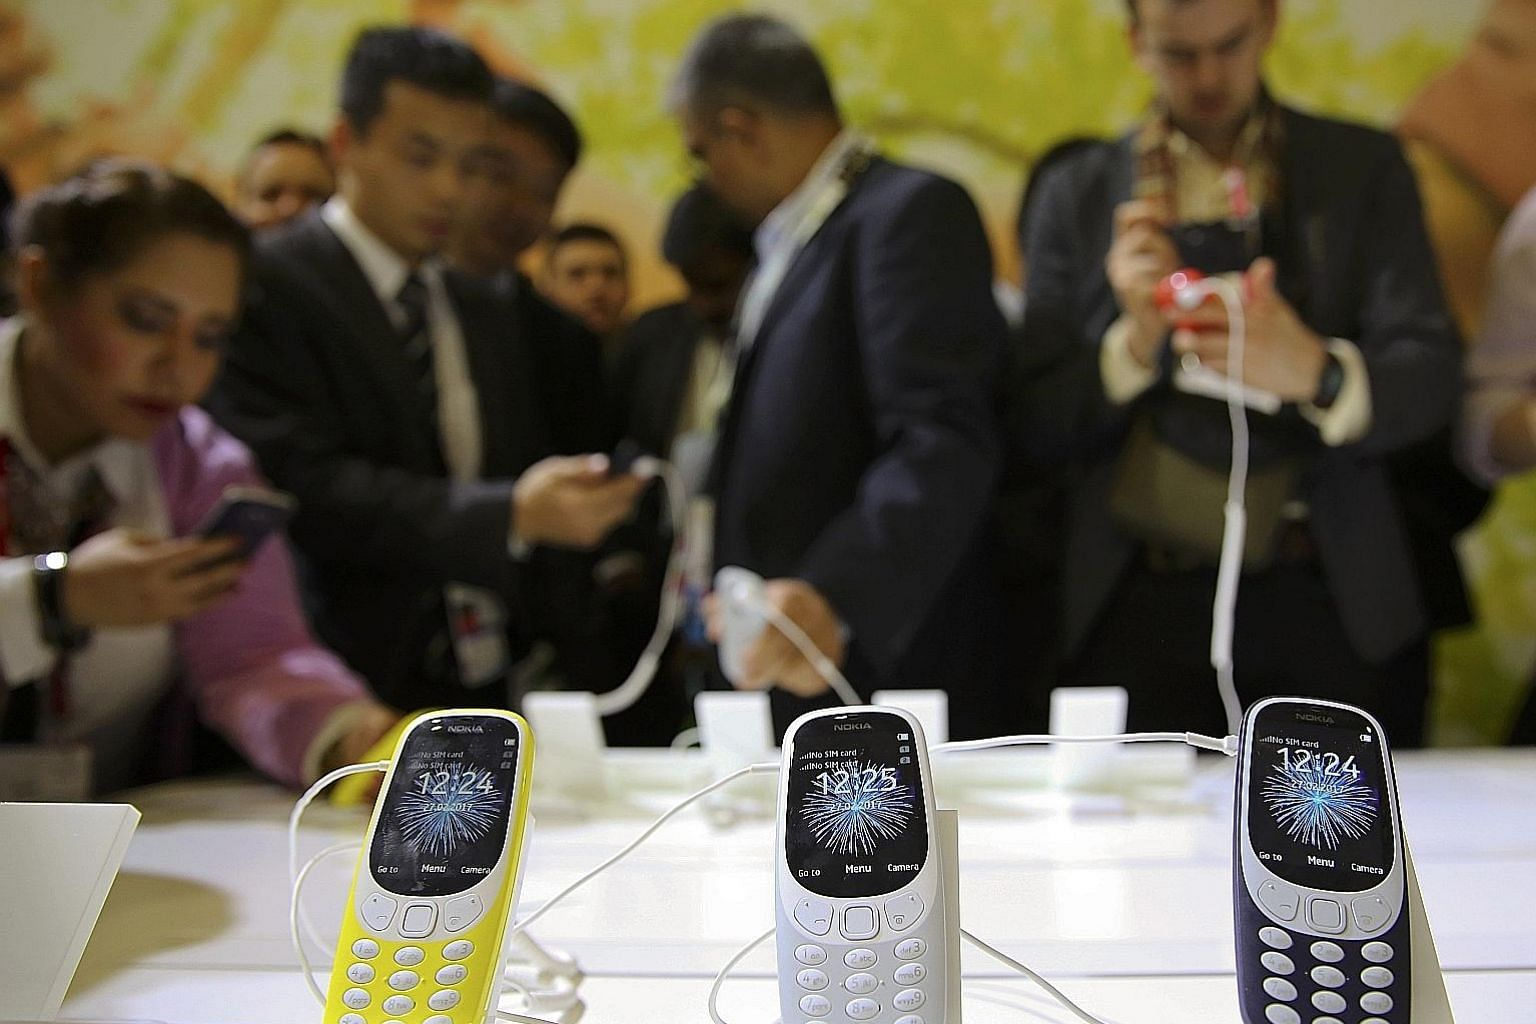 Display models of the relaunched Nokia 3310 at the Mobile World Congress in Barcelona, Spain. It is unlikely the Nokia 3310 will be sold in Singapore as all 2G networks in the country will close from April.